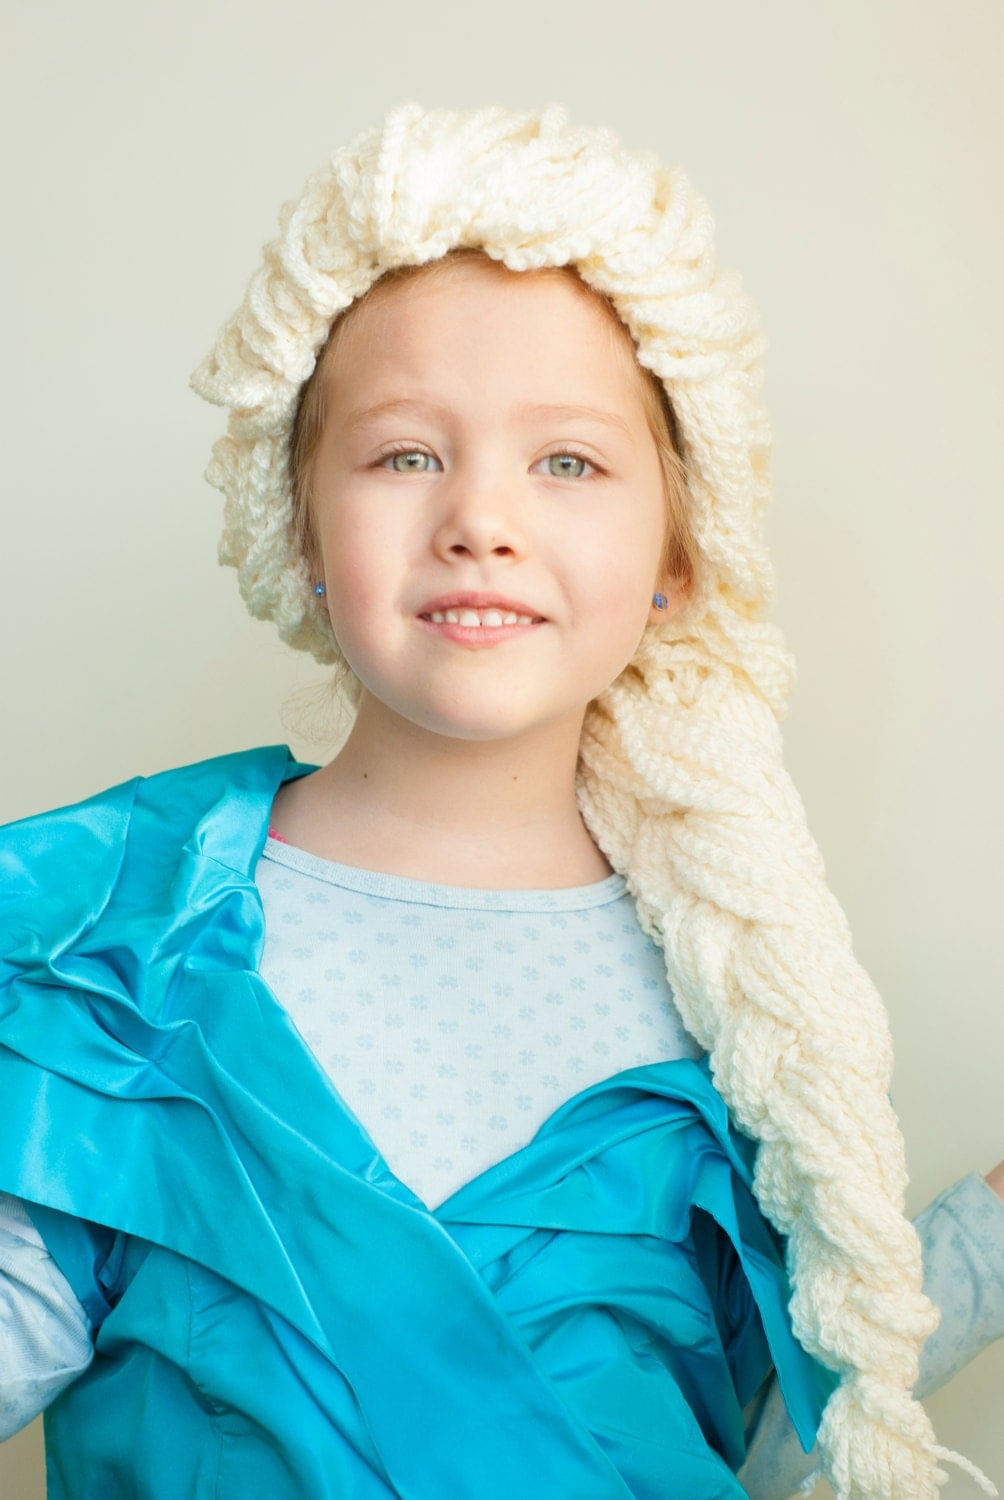 Crochet Elsa Hair : Crochet pattern Elsa hair wig to dress up Frozen inspired